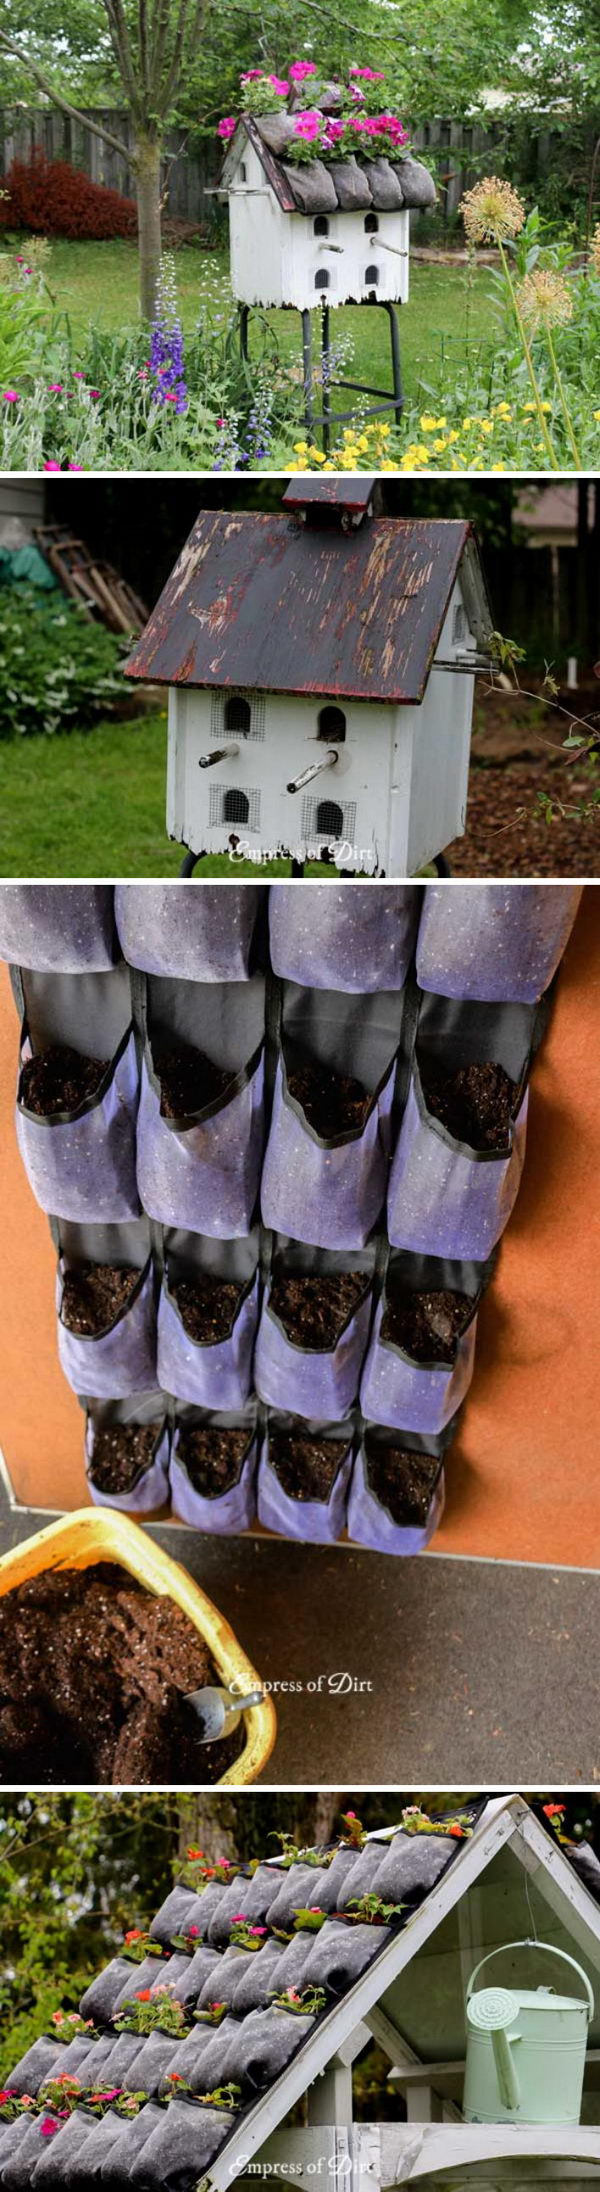 Add a Flower Top Roof to Mini Greenhouse.